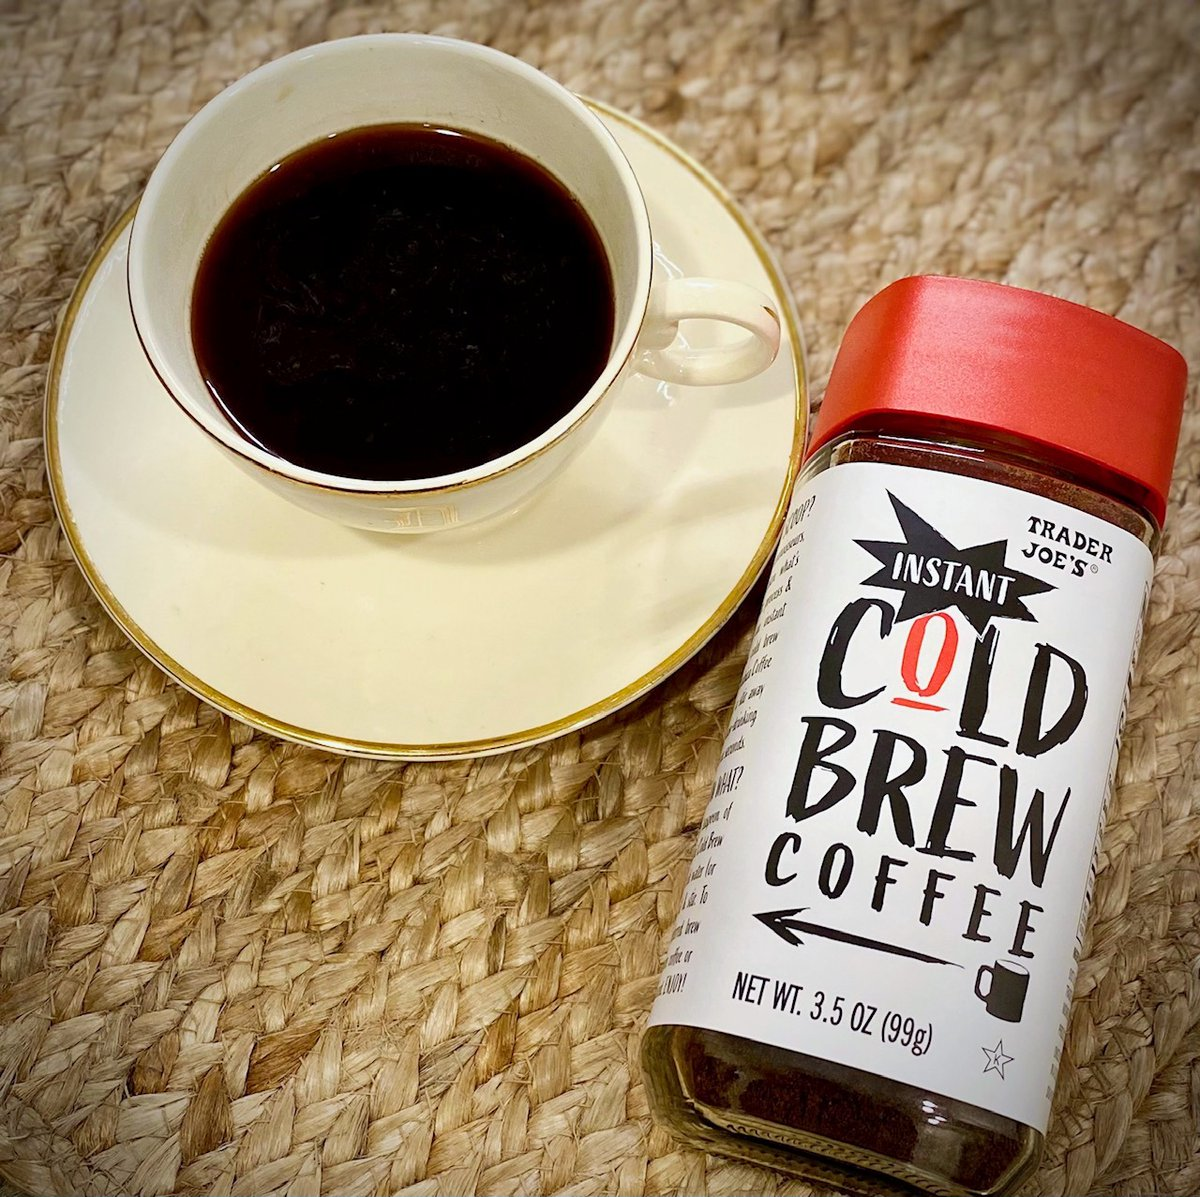 𝒜 𝓃𝑒𝓌 𝒹𝒶𝓎 𝑜𝒻 𝑜𝓅𝓅𝑜𝓇𝓉𝓊𝓃𝒾𝓉𝒾𝑒𝓈 over a cup of #TraderJoes Instant Cold Brew #Coffee   #Shop these similar brands below  ↓    ↓    ↓  STARBUCKS  HI-BALL ORGANIC  BULLETPROOF  #thursdaymorning